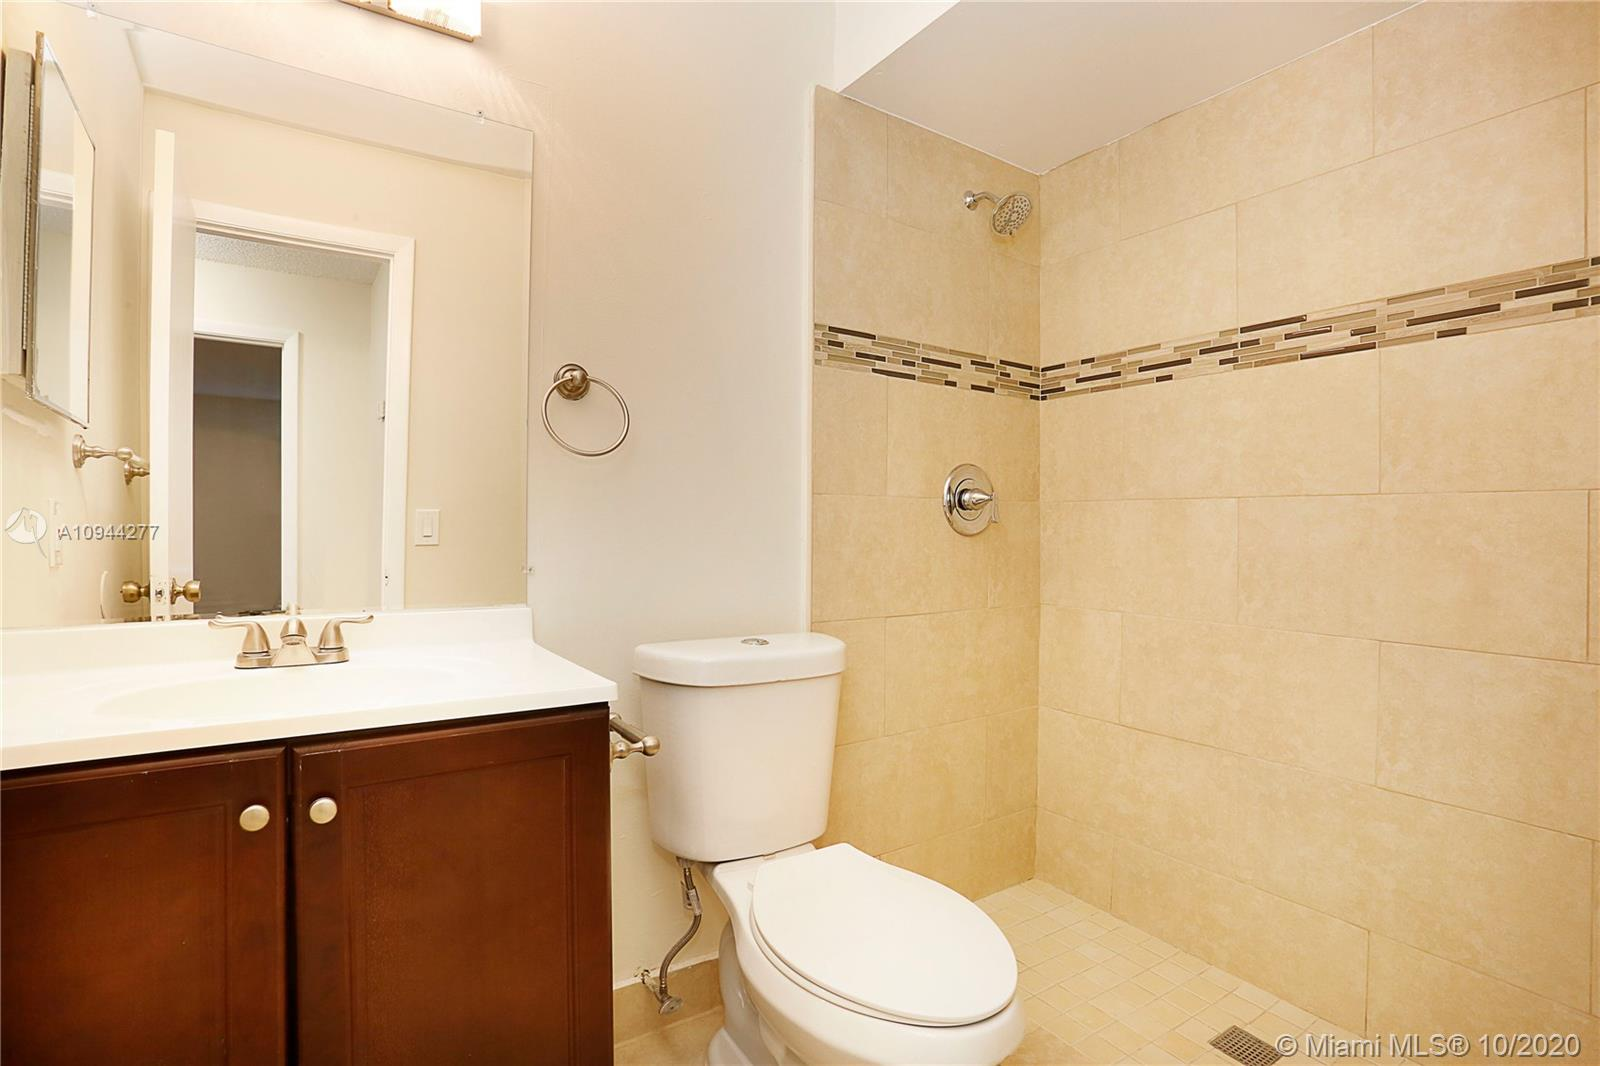 8613 SW 156 PL # 312, Miami, Florida 33193, 2 Bedrooms Bedrooms, 5 Rooms Rooms,3 BathroomsBathrooms,Residential,For Sale,8613 SW 156 PL # 312,A10944277